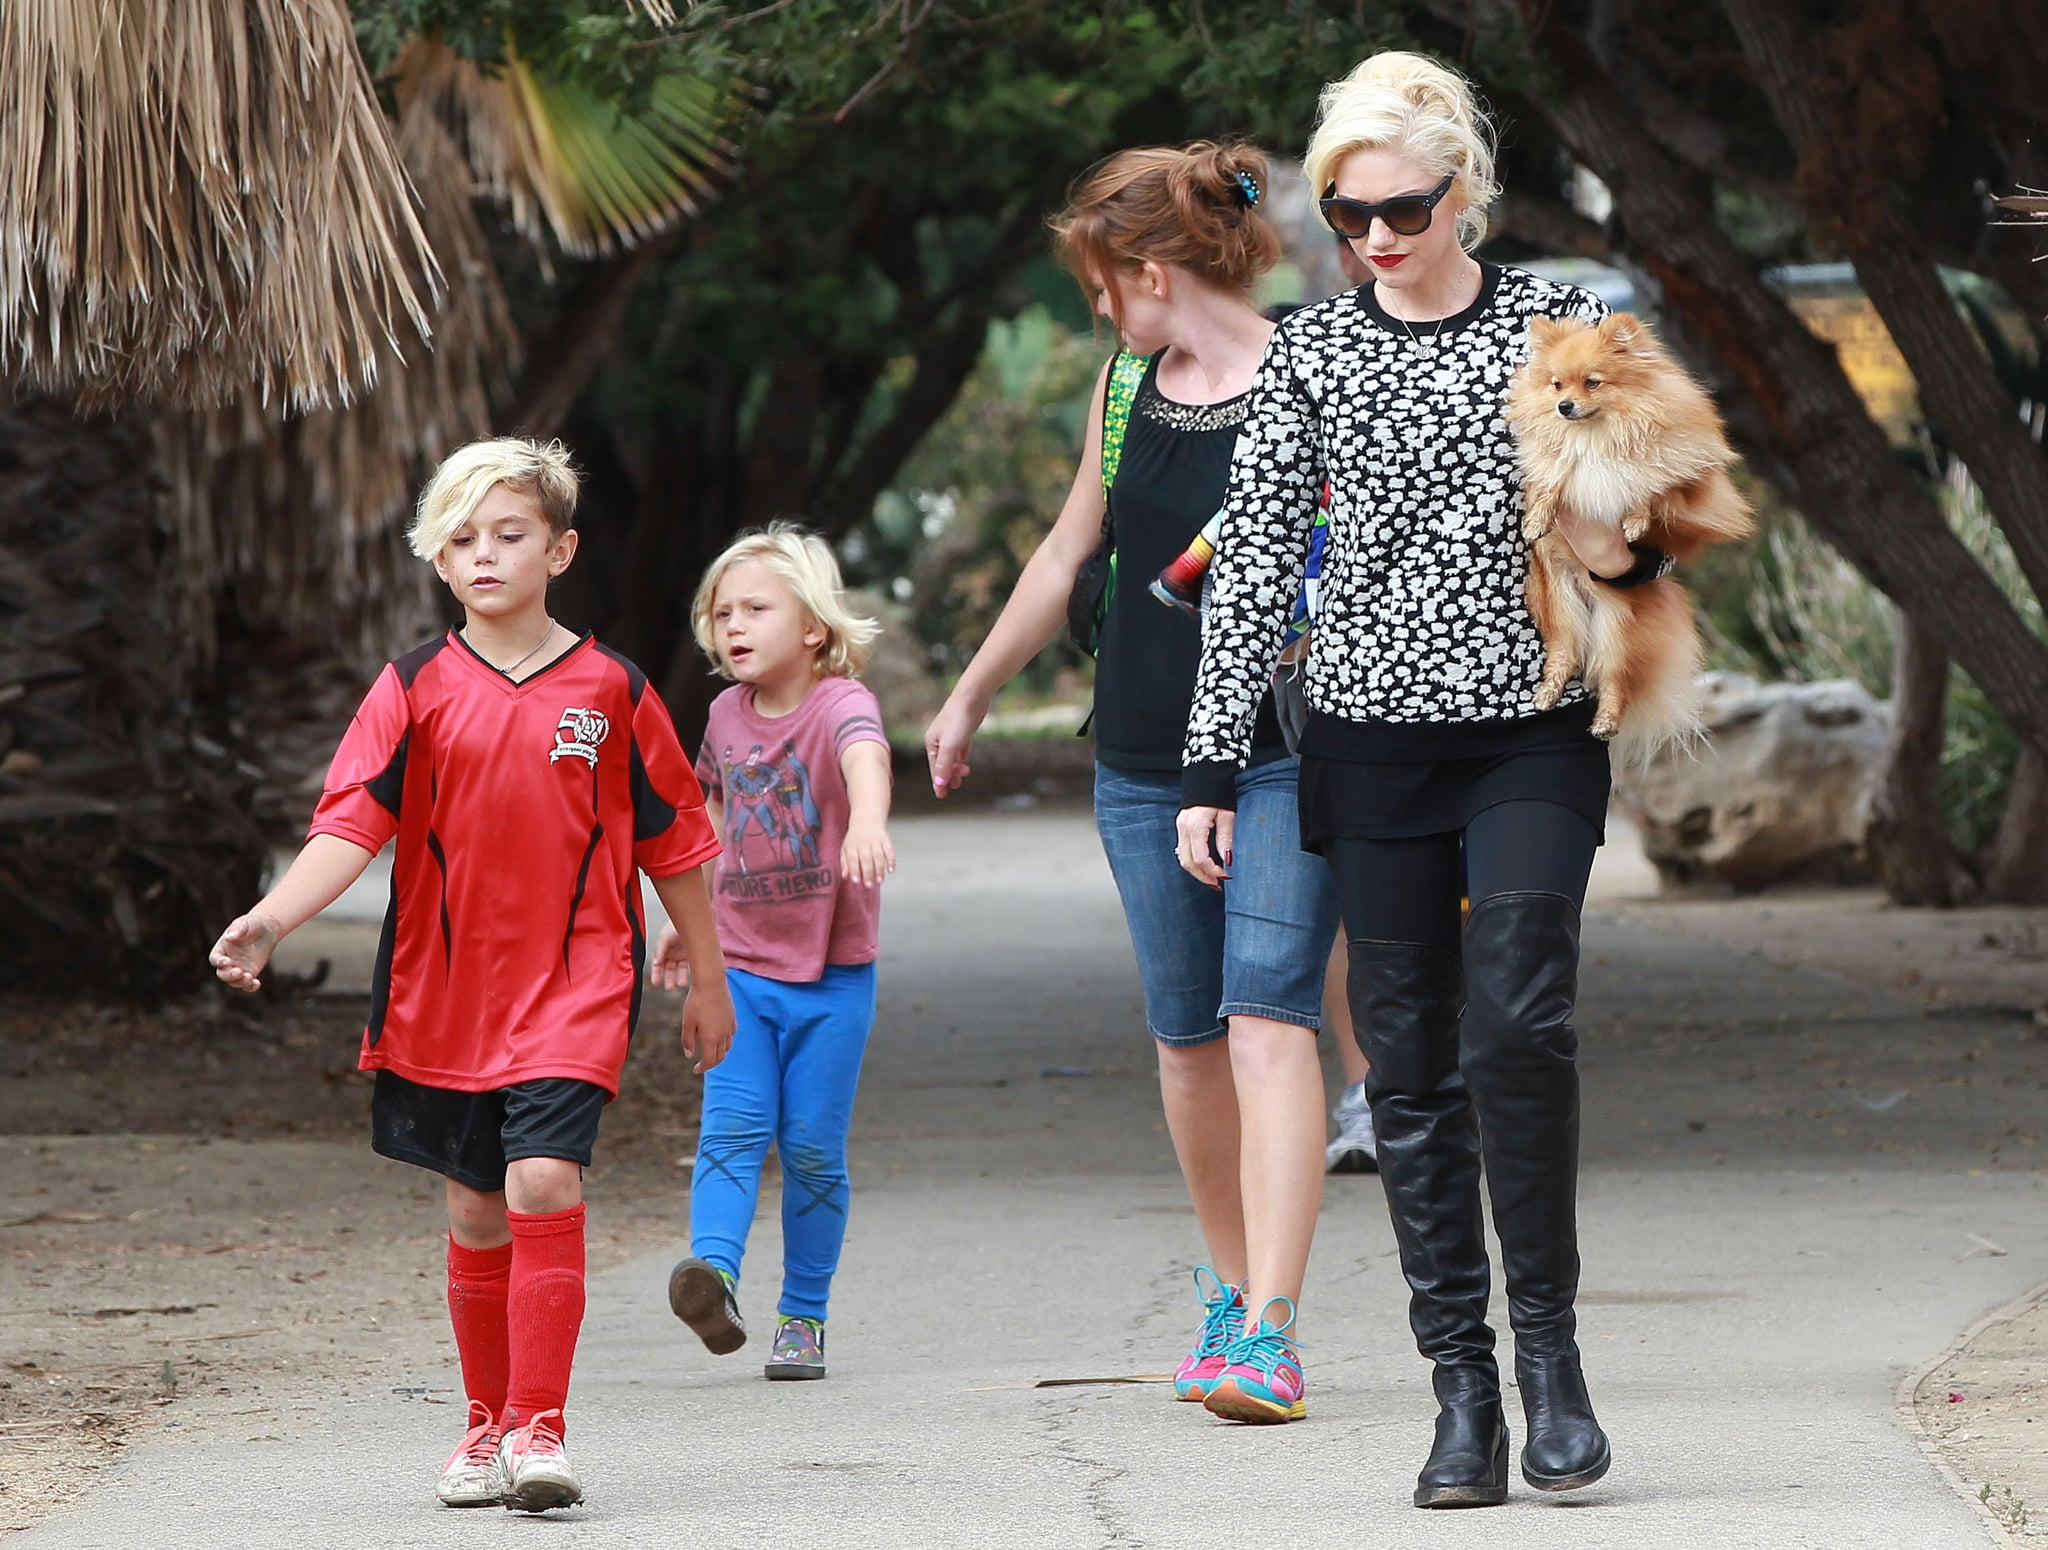 Gwen Stefani walked with her sons, Kingston and Zuma Rossdale, and their family dog.